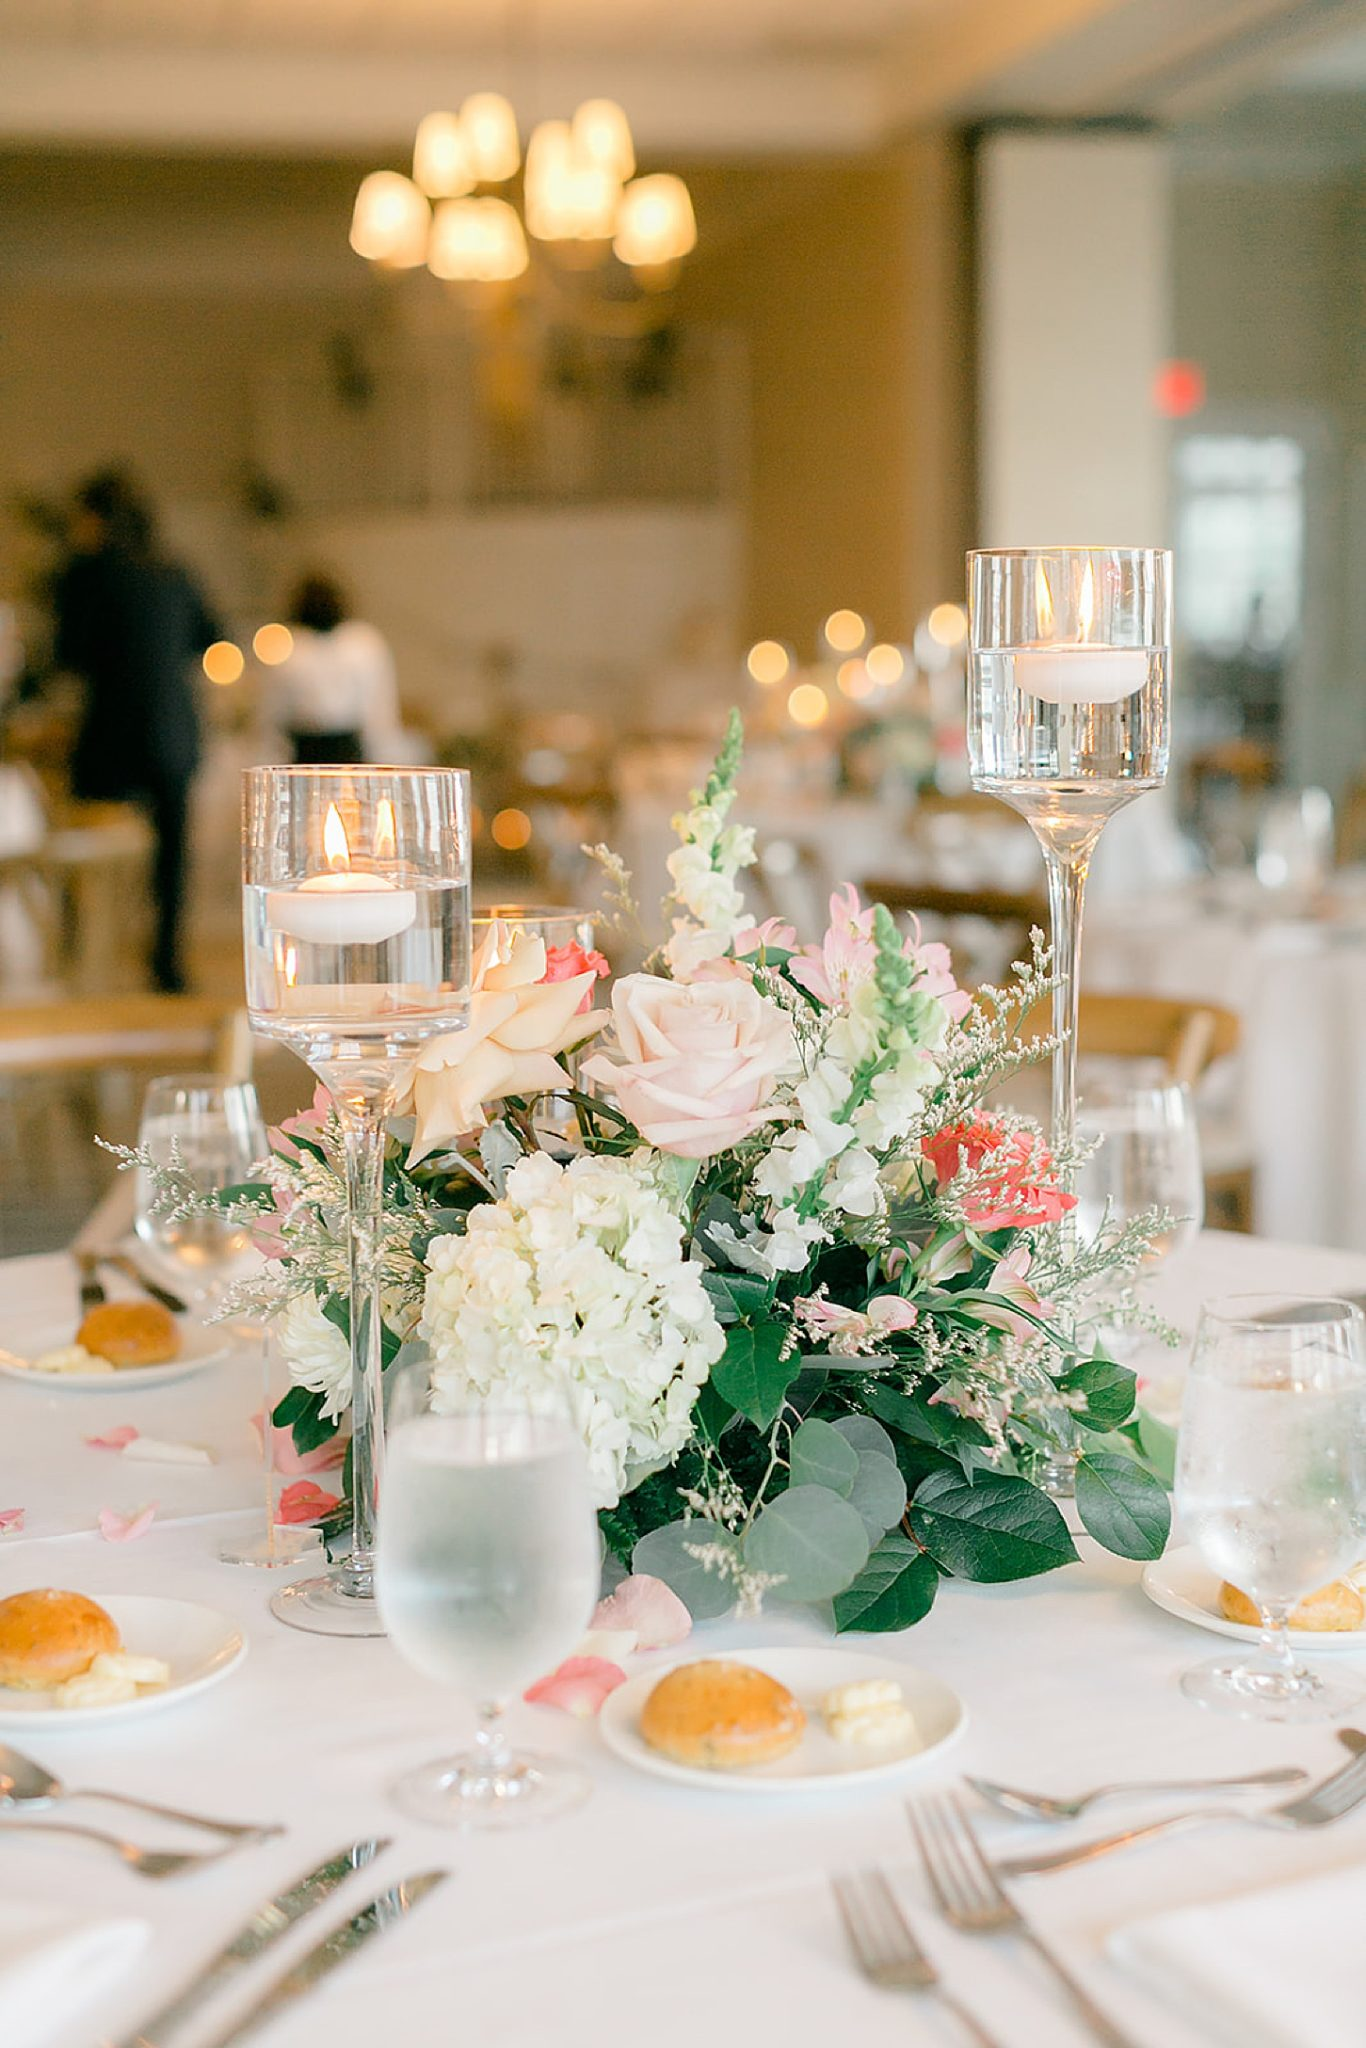 Linwood Country Club Summer Wedding Photography Studio by Magdalena Studios Jenn Kyle 0053 scaled